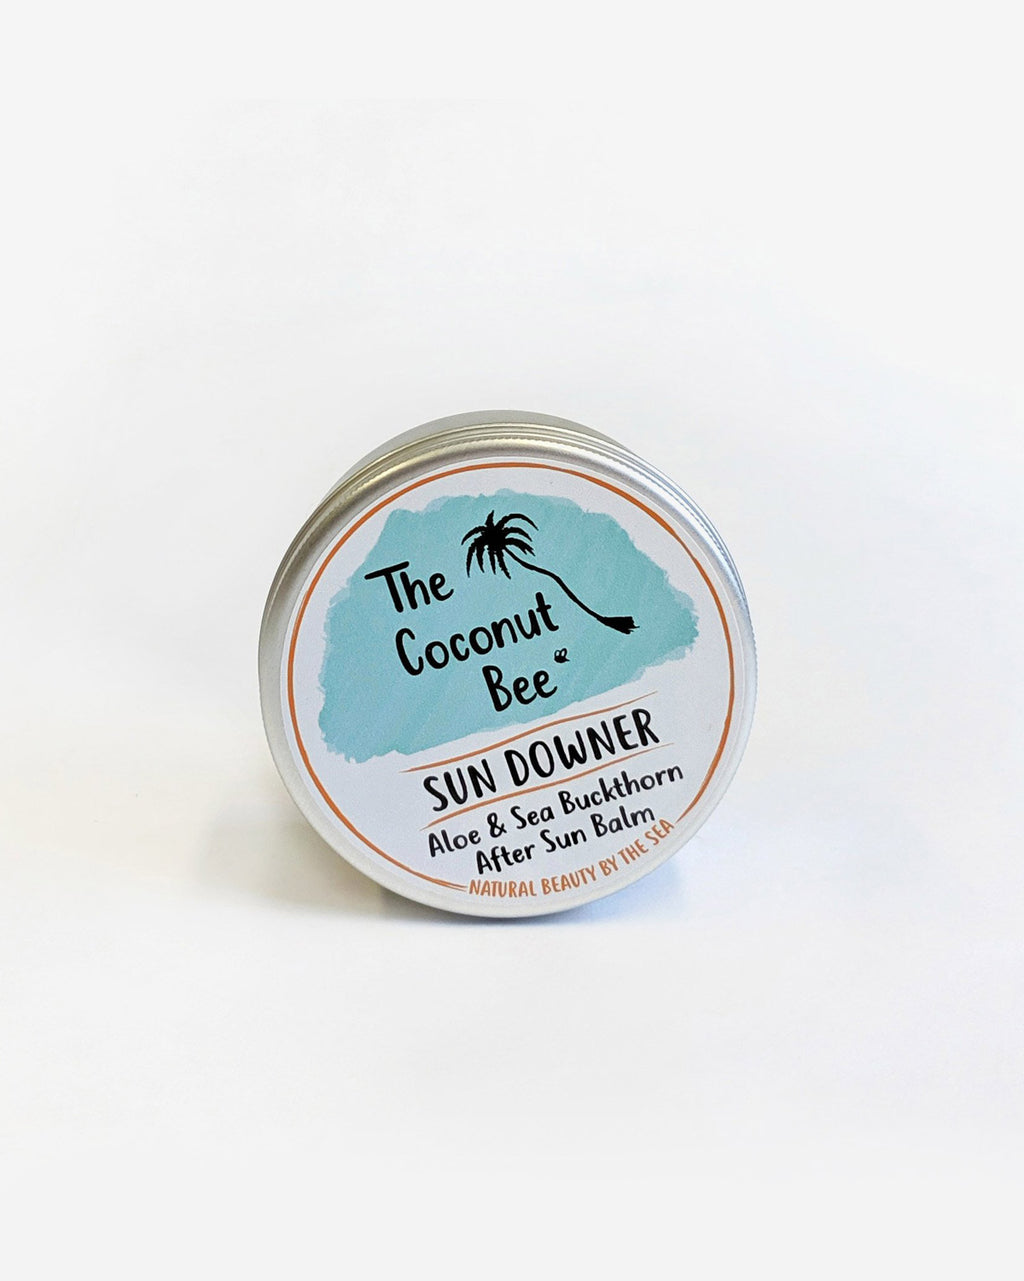 The Coconut Bee 'Sun Downer' - After Sun Balm